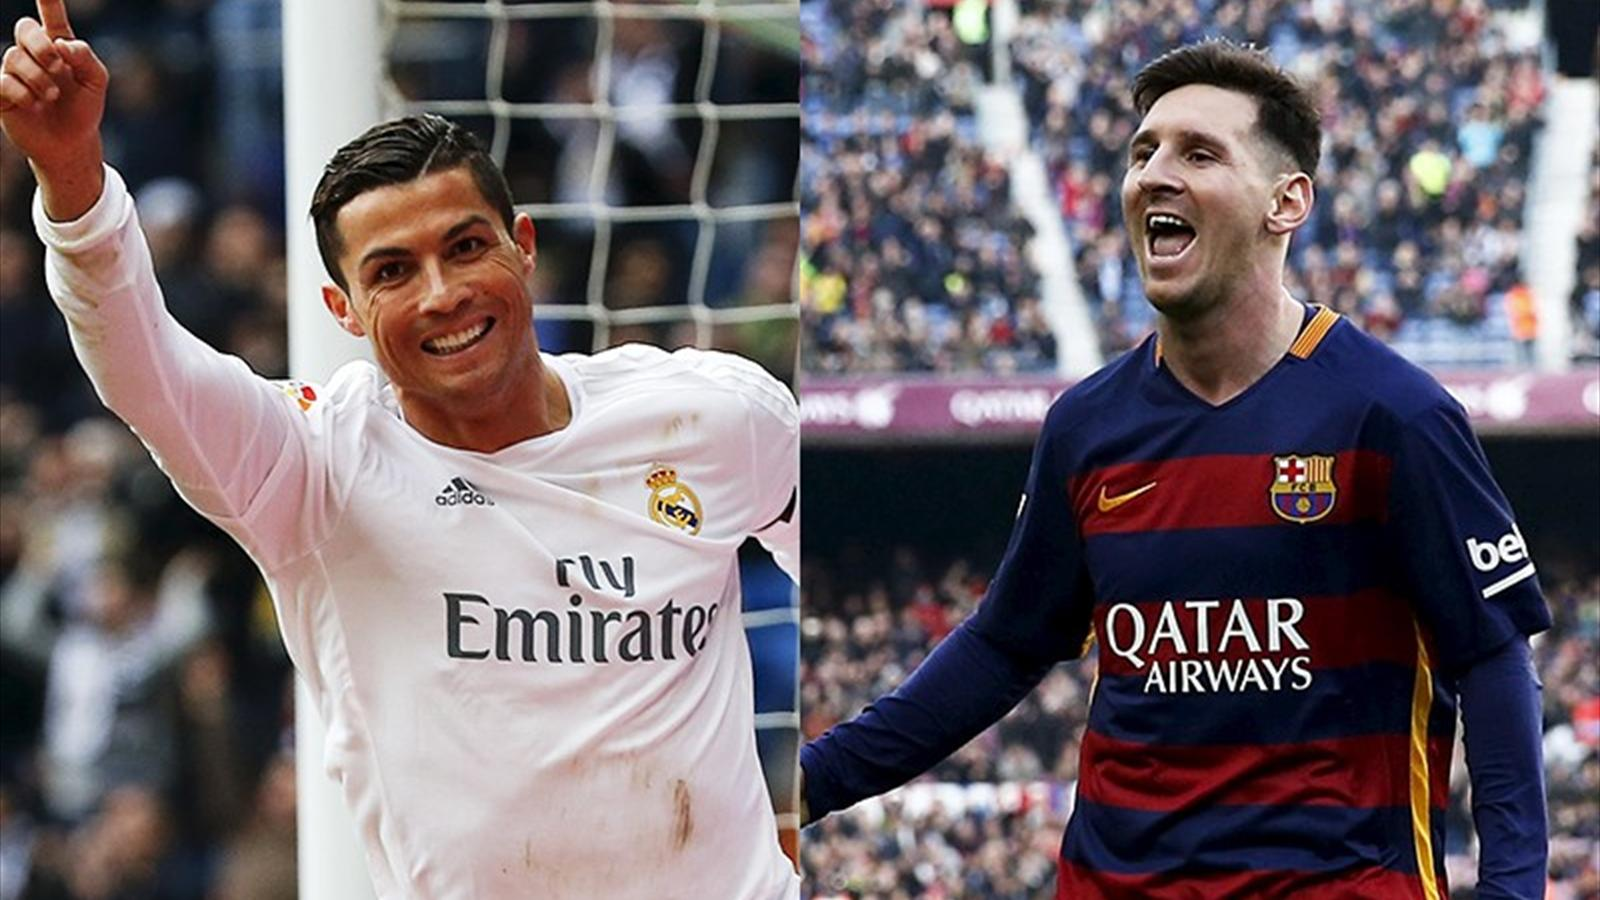 Real Madrid's Cristiano Ronaldo and Lionel Messi of Barcelona